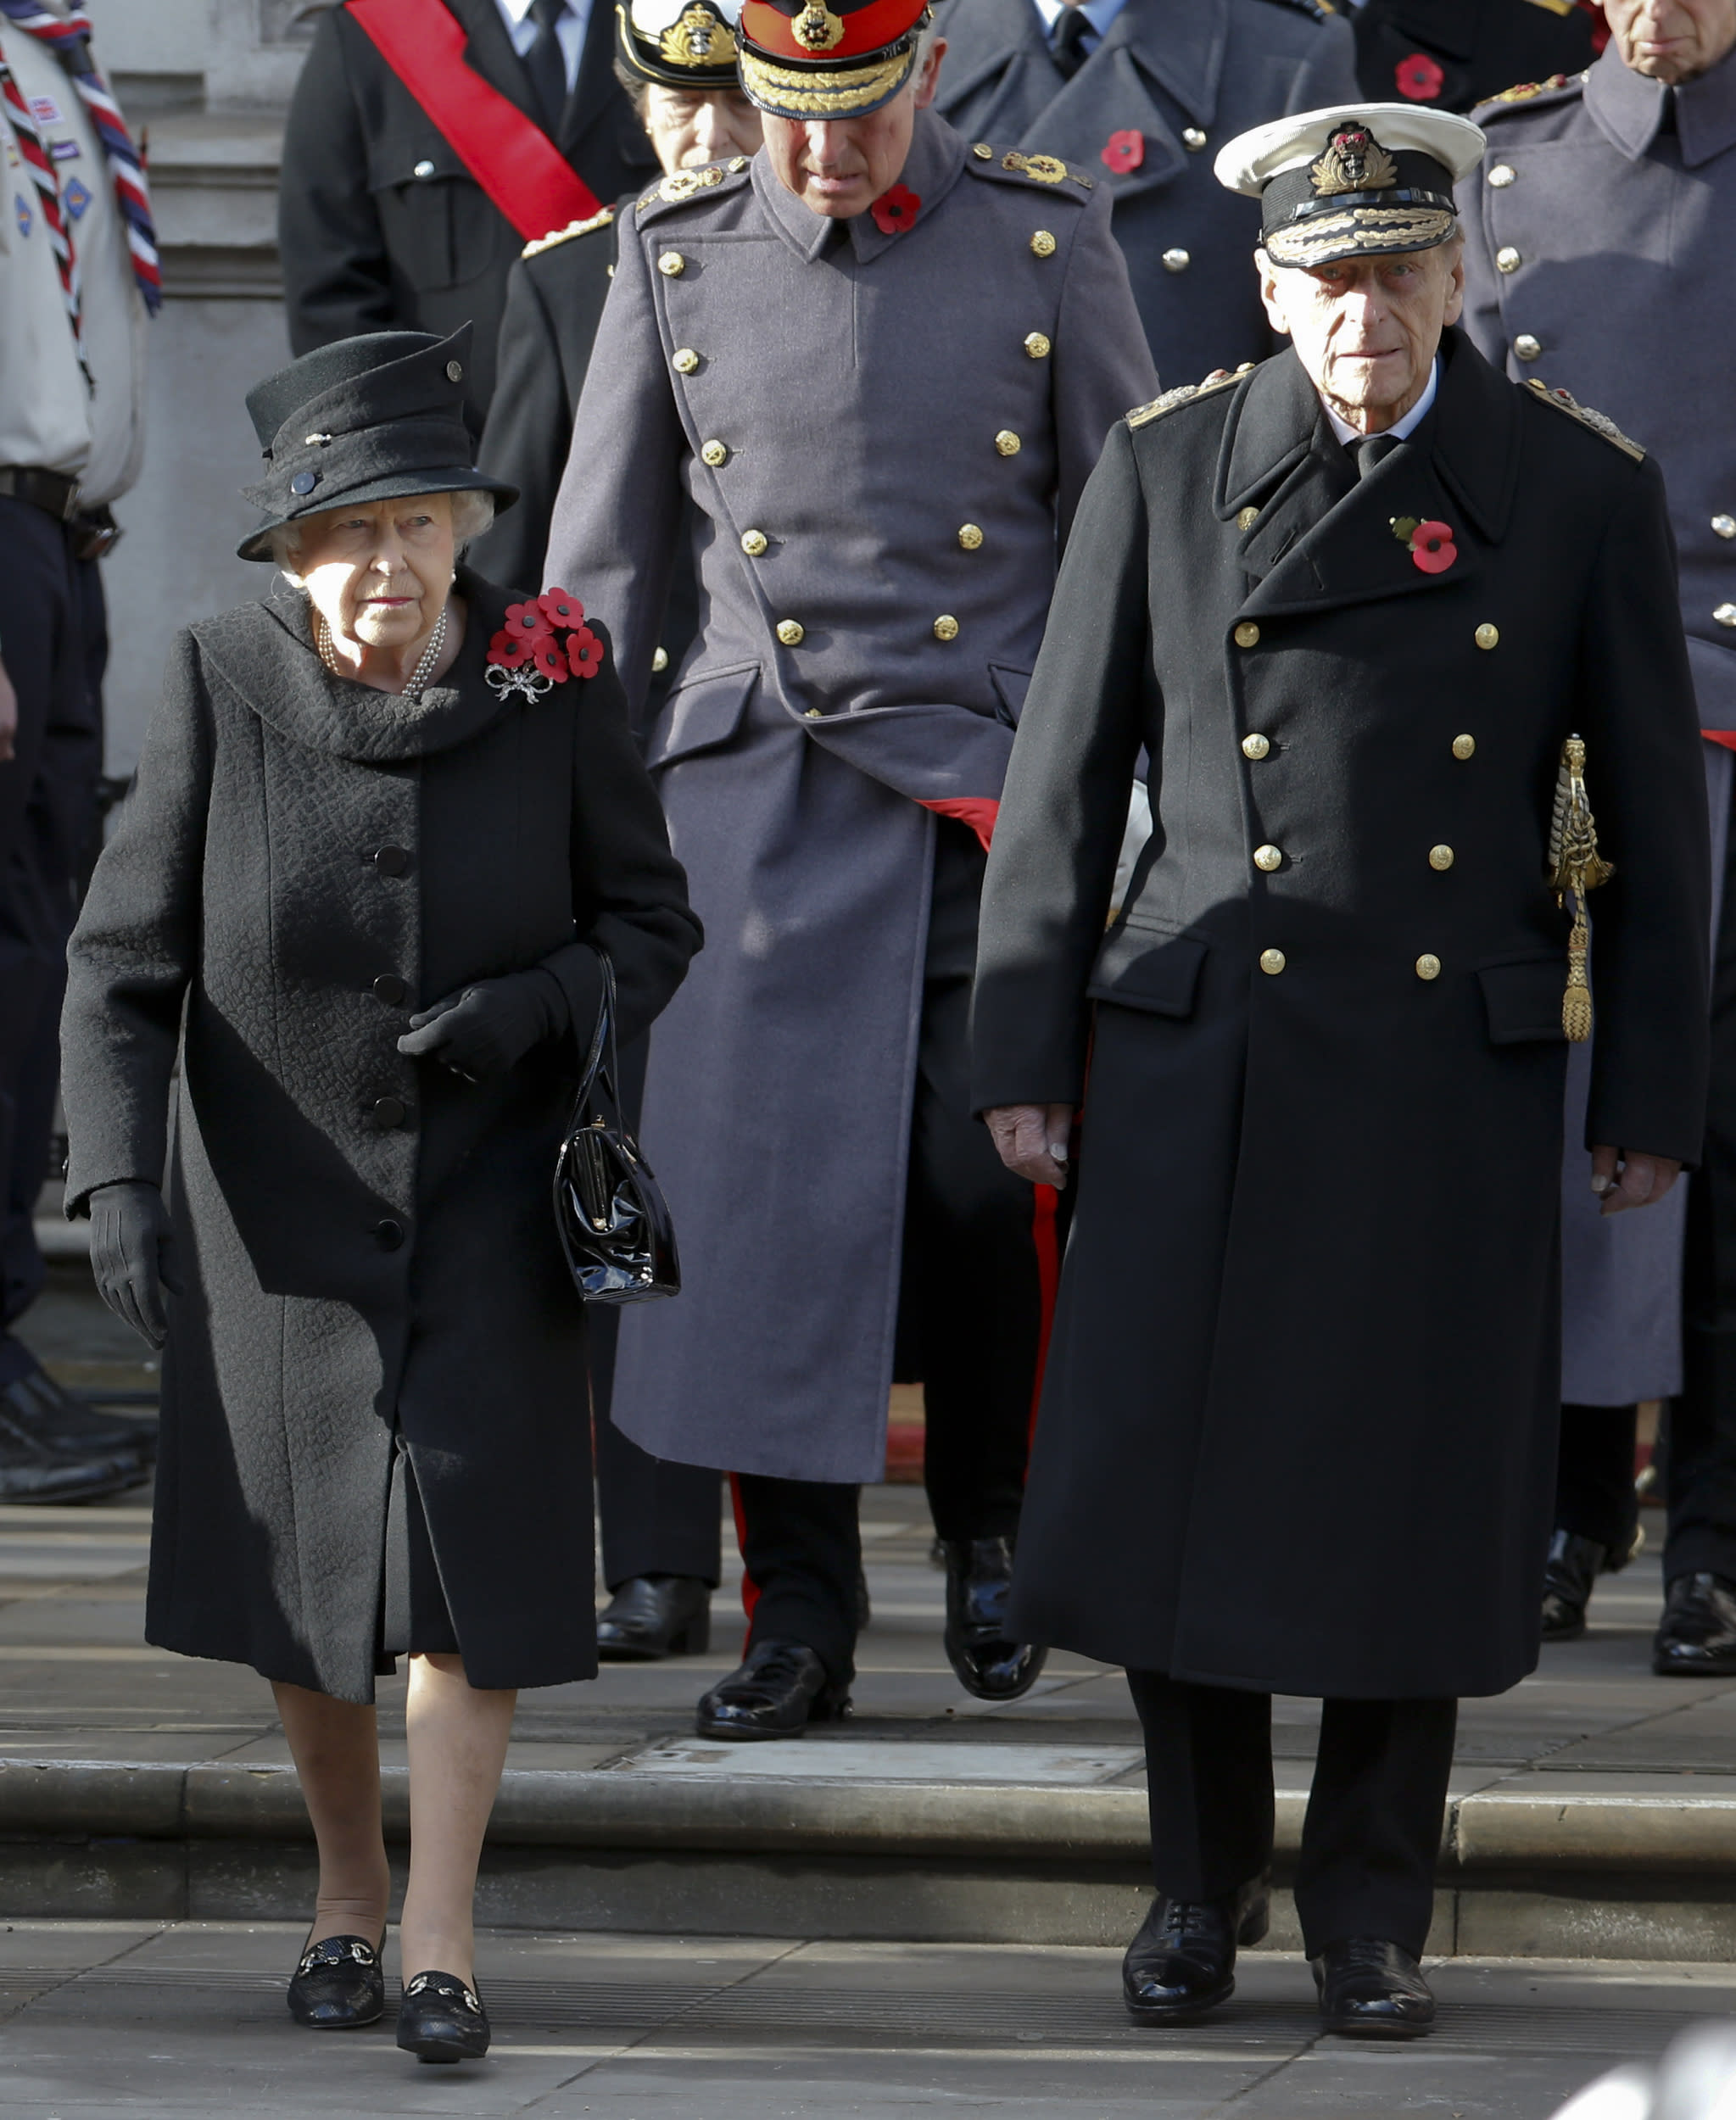 FILE - A Sunday, Nov. 13, 2016 file photo of Britain's Queen Elizabeth II and Prince Philip walking out to take part in the Remembrance Sunday service at the Cenotaph in London. Queen Elizabeth II will not personally place a wreath on The Cenotaph on Remembrance Sunday this year. The aging monarch and her husband Prince Philip will instead watch the ceremony from a balcony at the Foreign & Commonwealth Office. (AP Photo/Alastair Grant, File)